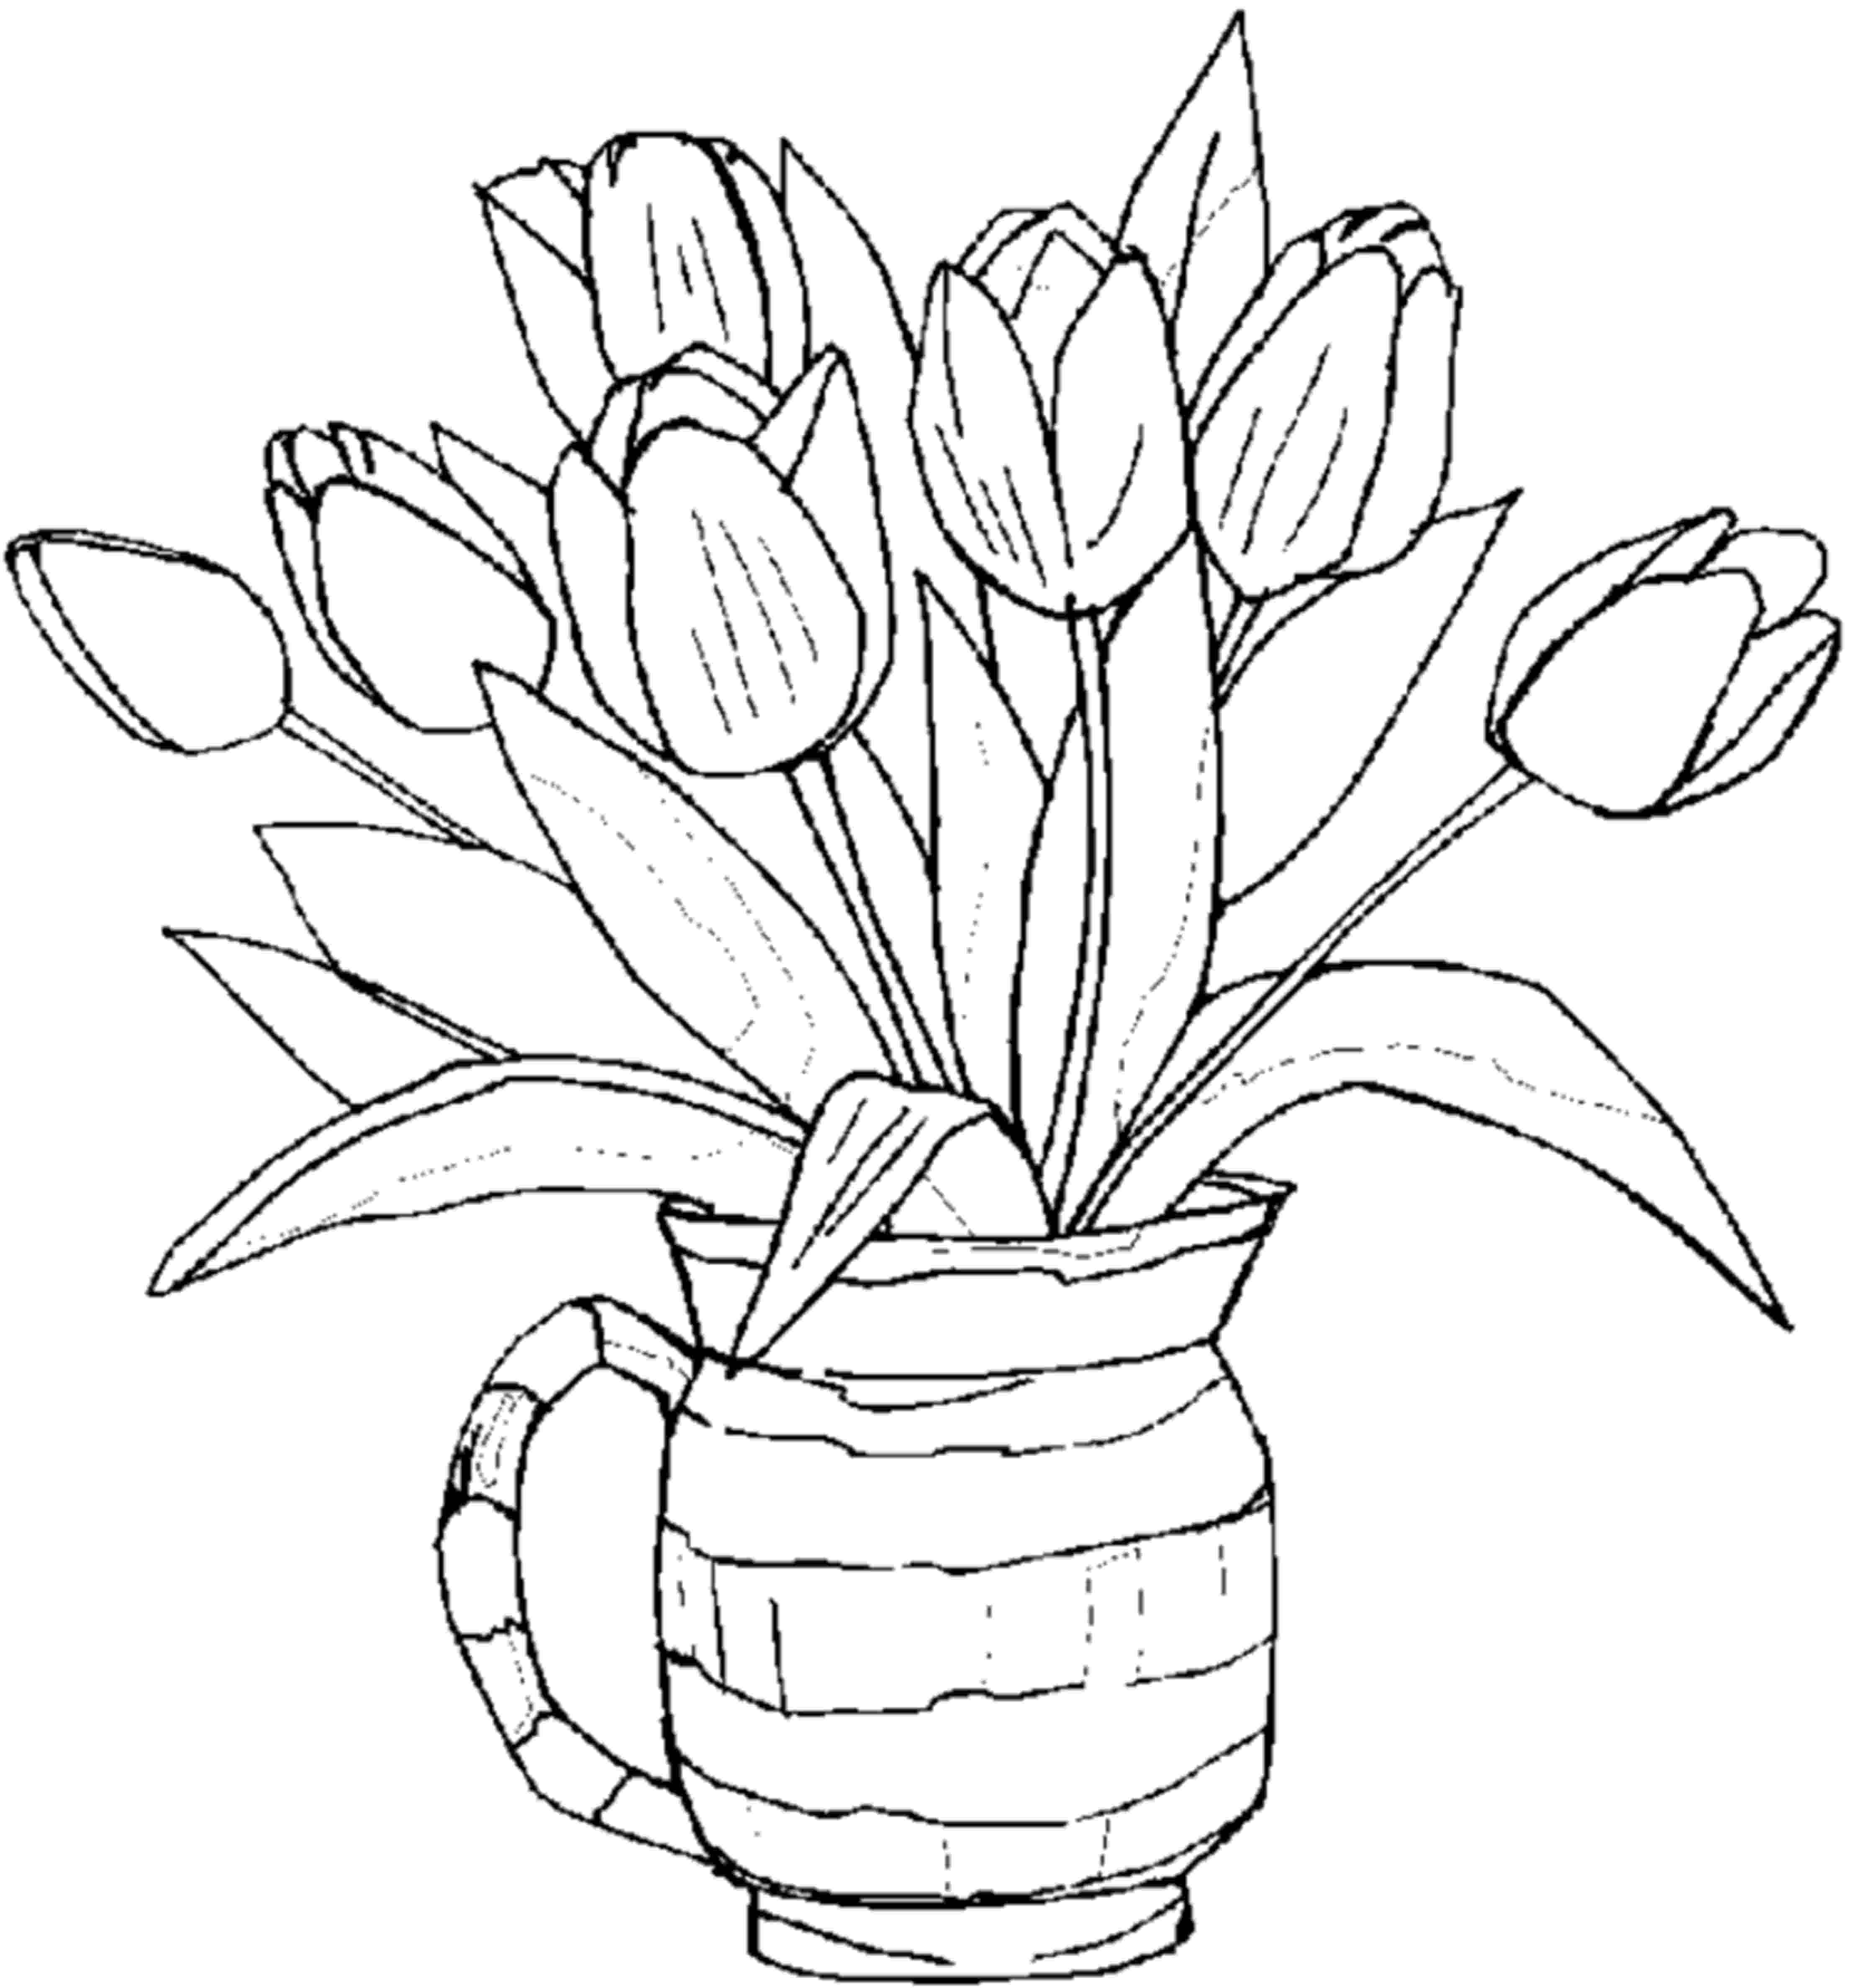 flower colouring pages to print beautiful flower coloring pages with delicate forms of pages to print flower colouring